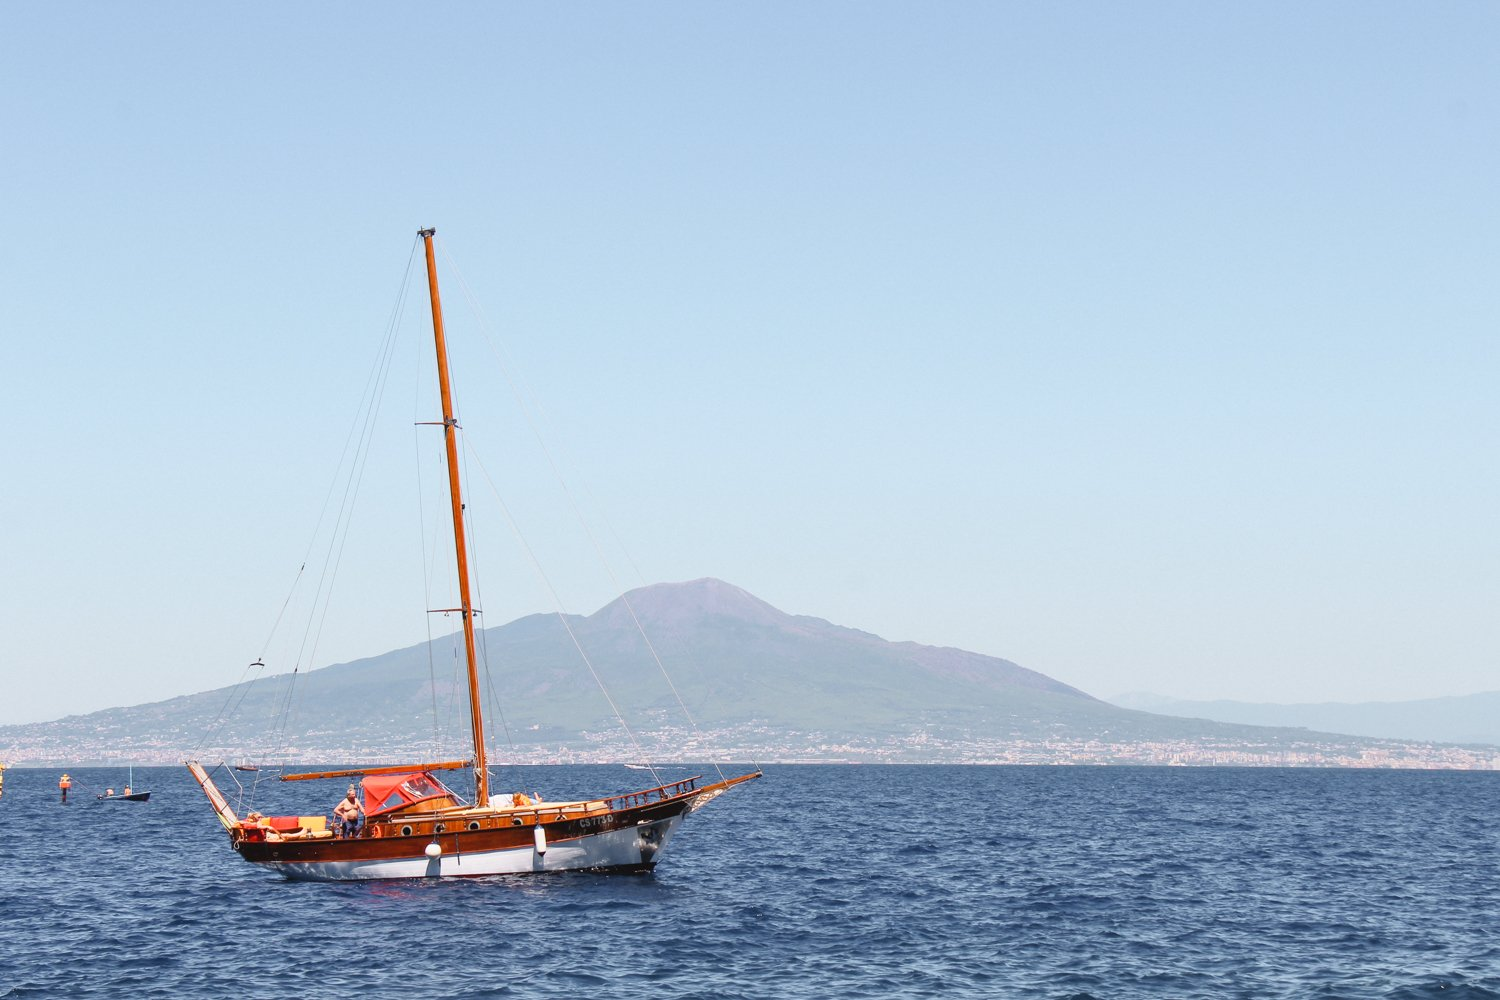 Sorrento - View of Vesuvius with Sail Boat